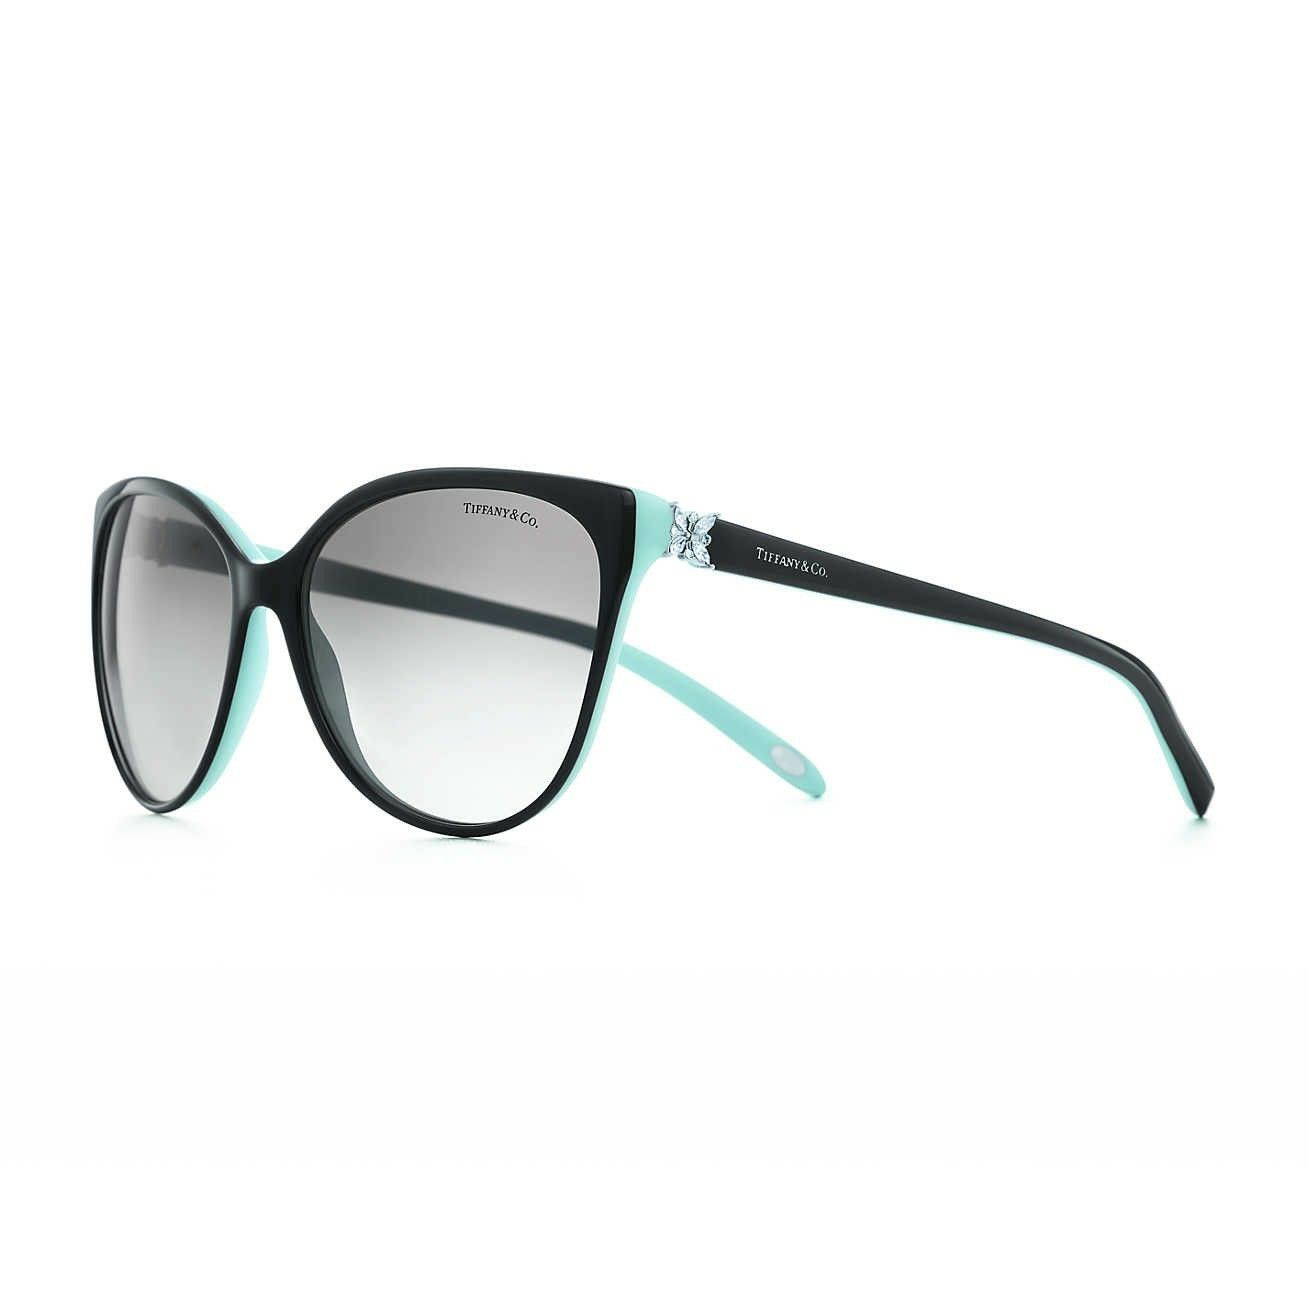 Tiffany and co. Sunglass | Glasses | Pinterest